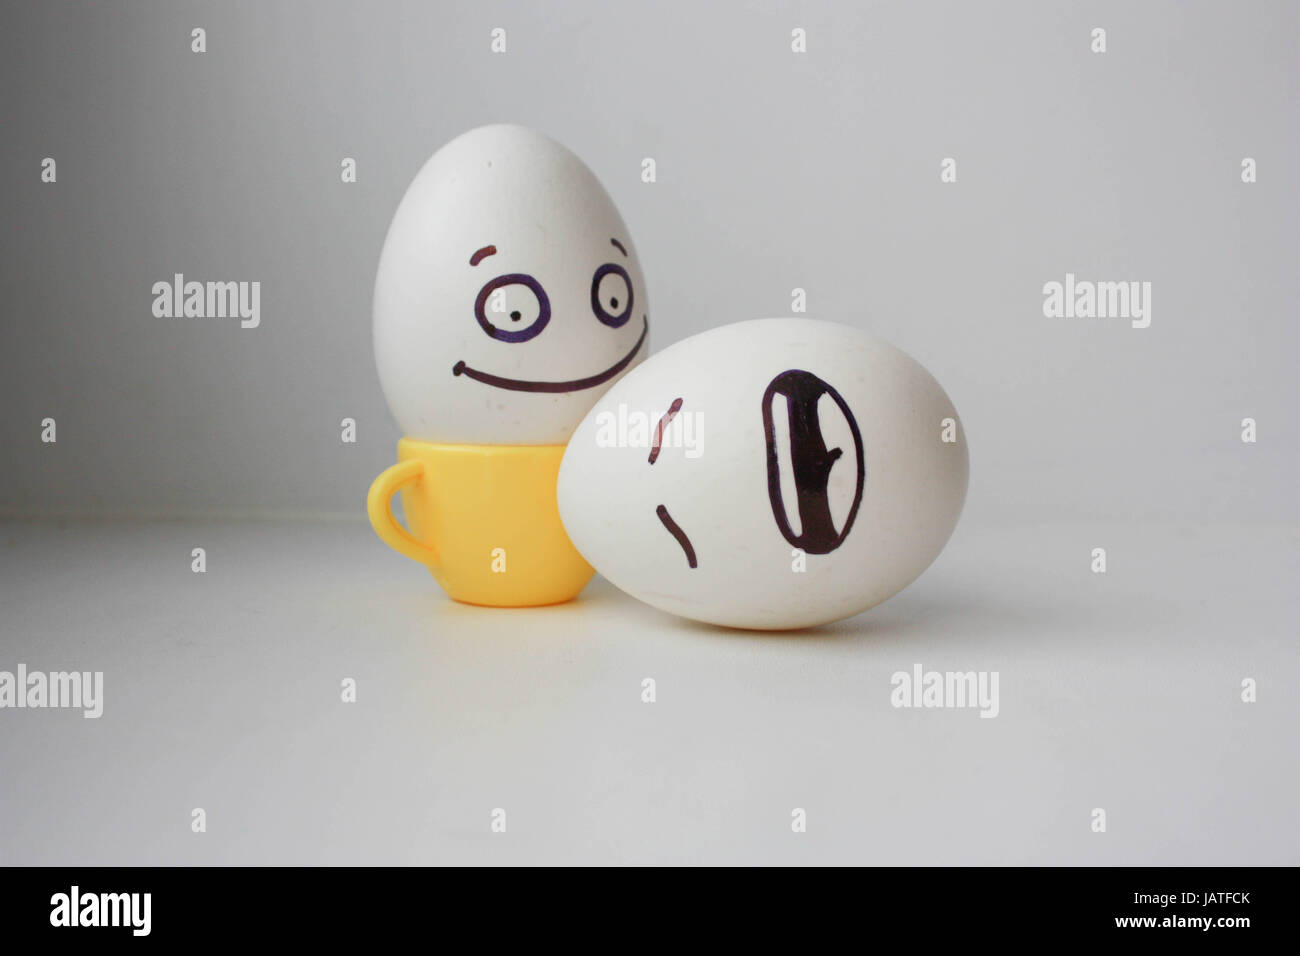 envy. Concept to get. Haste behind his back. Eggs with painted face. Photo for desig - Stock Image